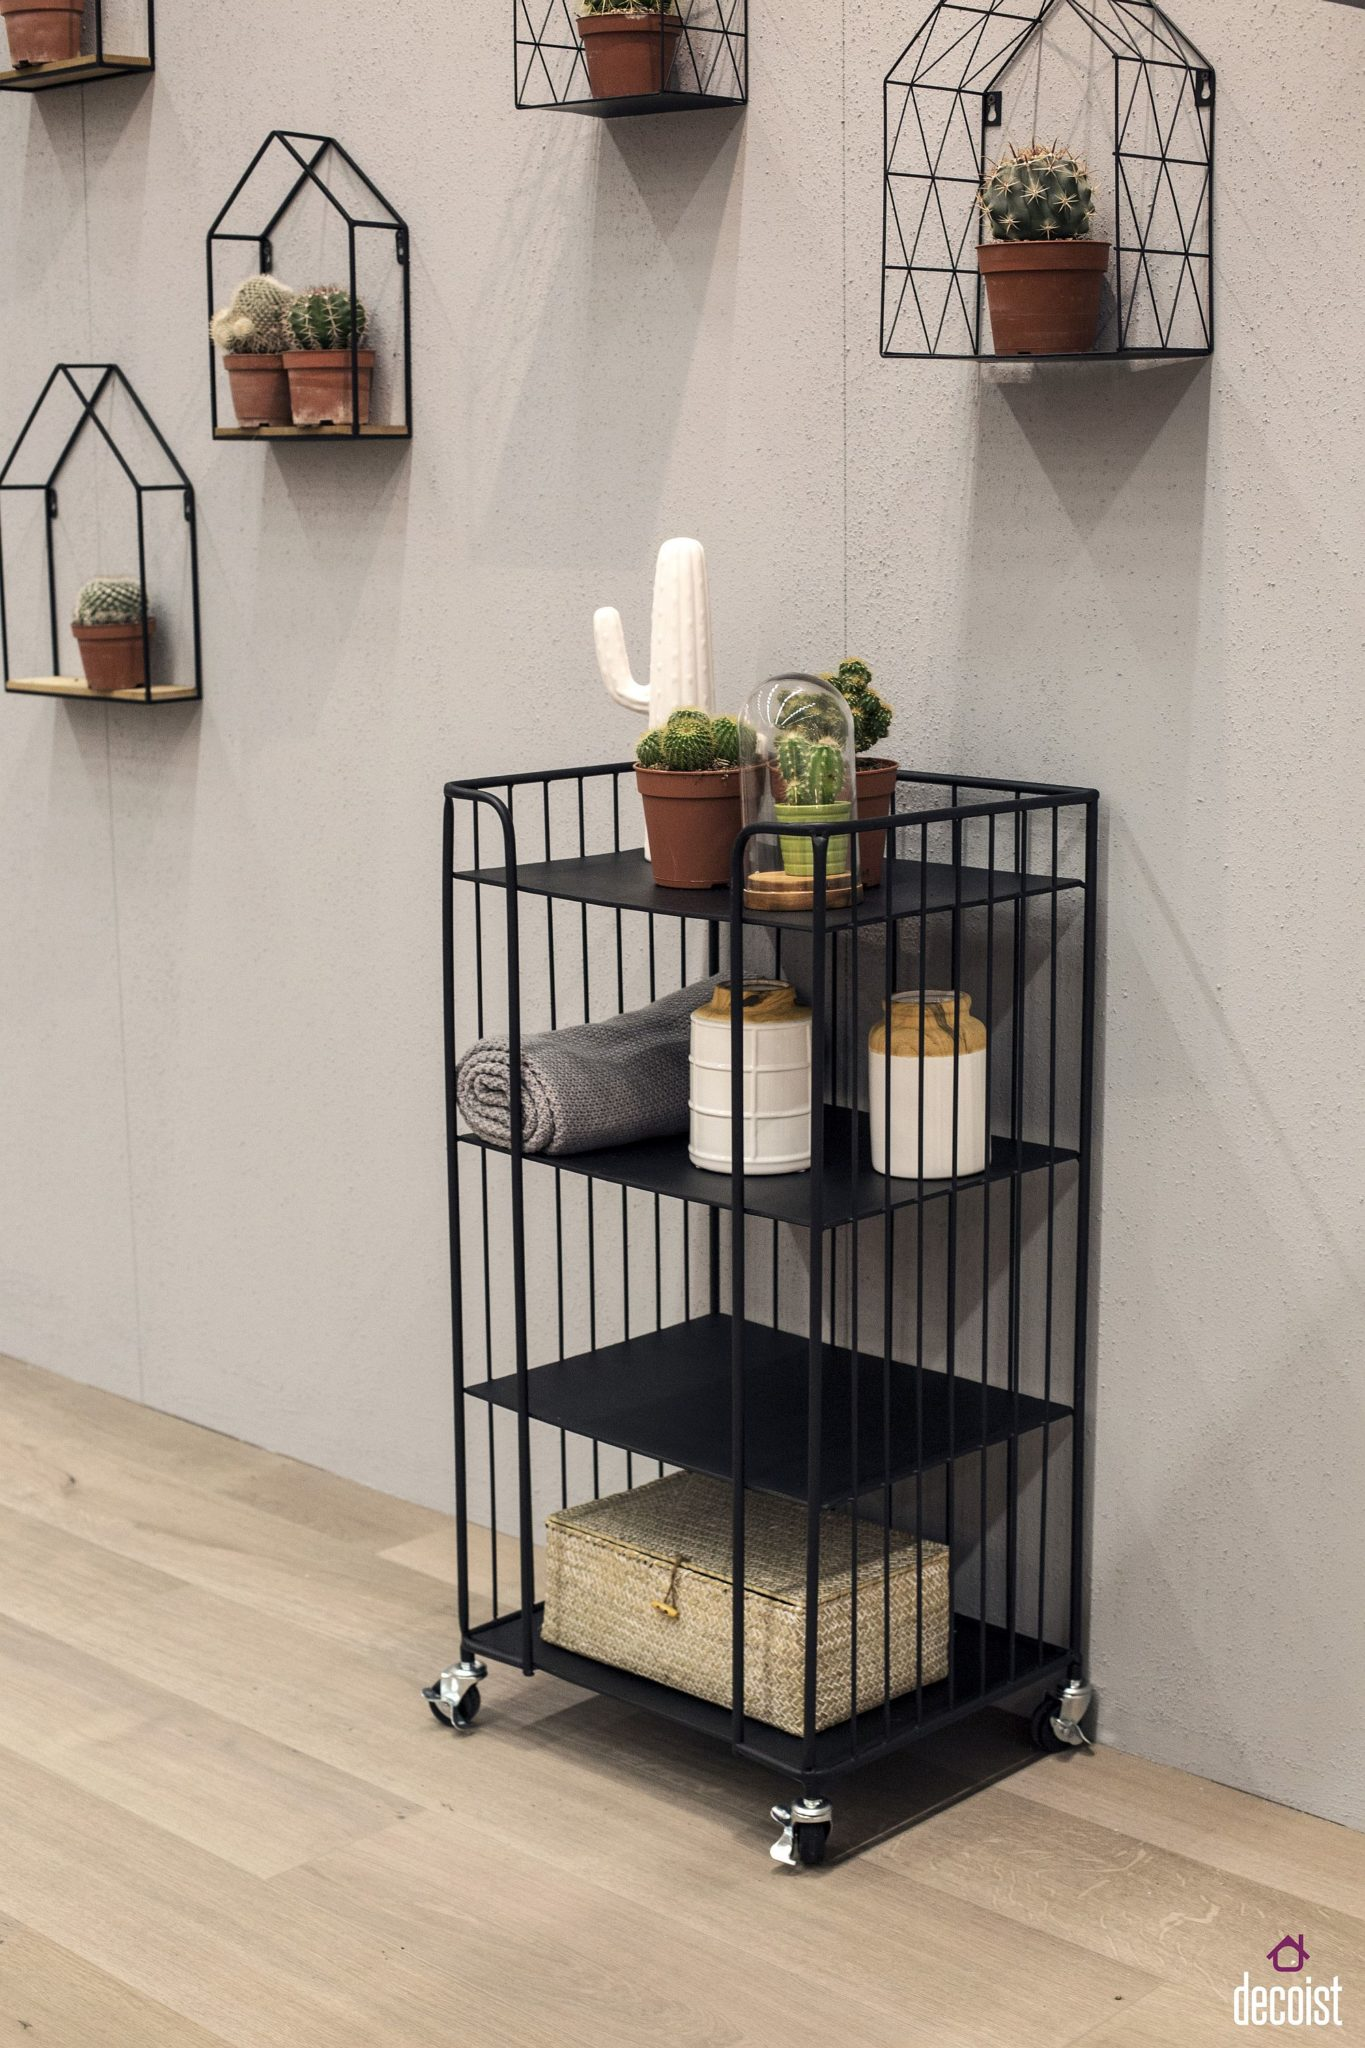 Wiry wall-mounted shelves are great decorative pieces all on their own!